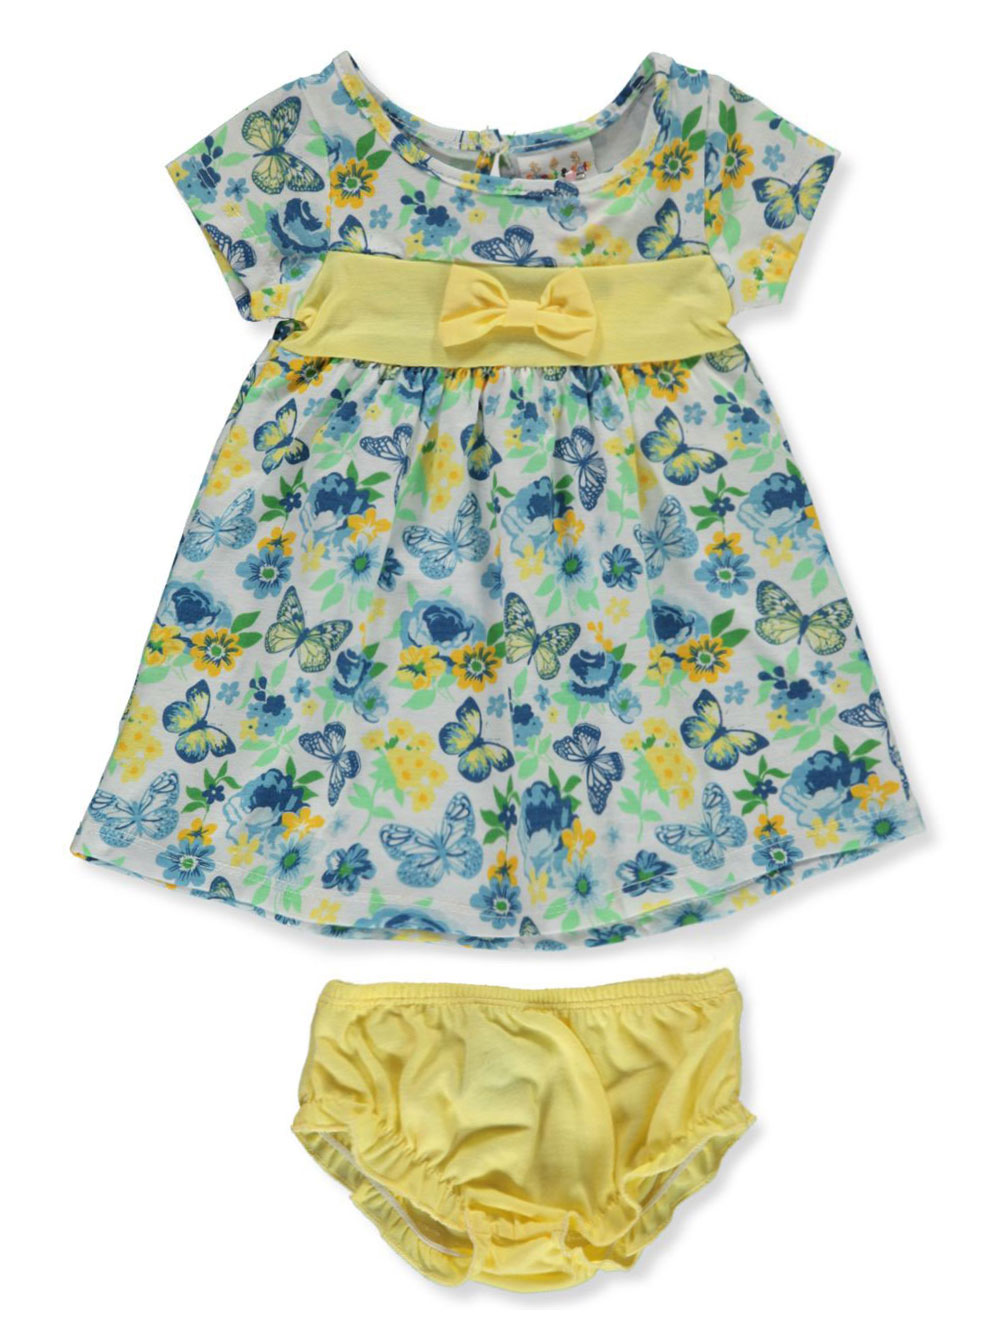 Blue and Multicolor Newborn Dresses